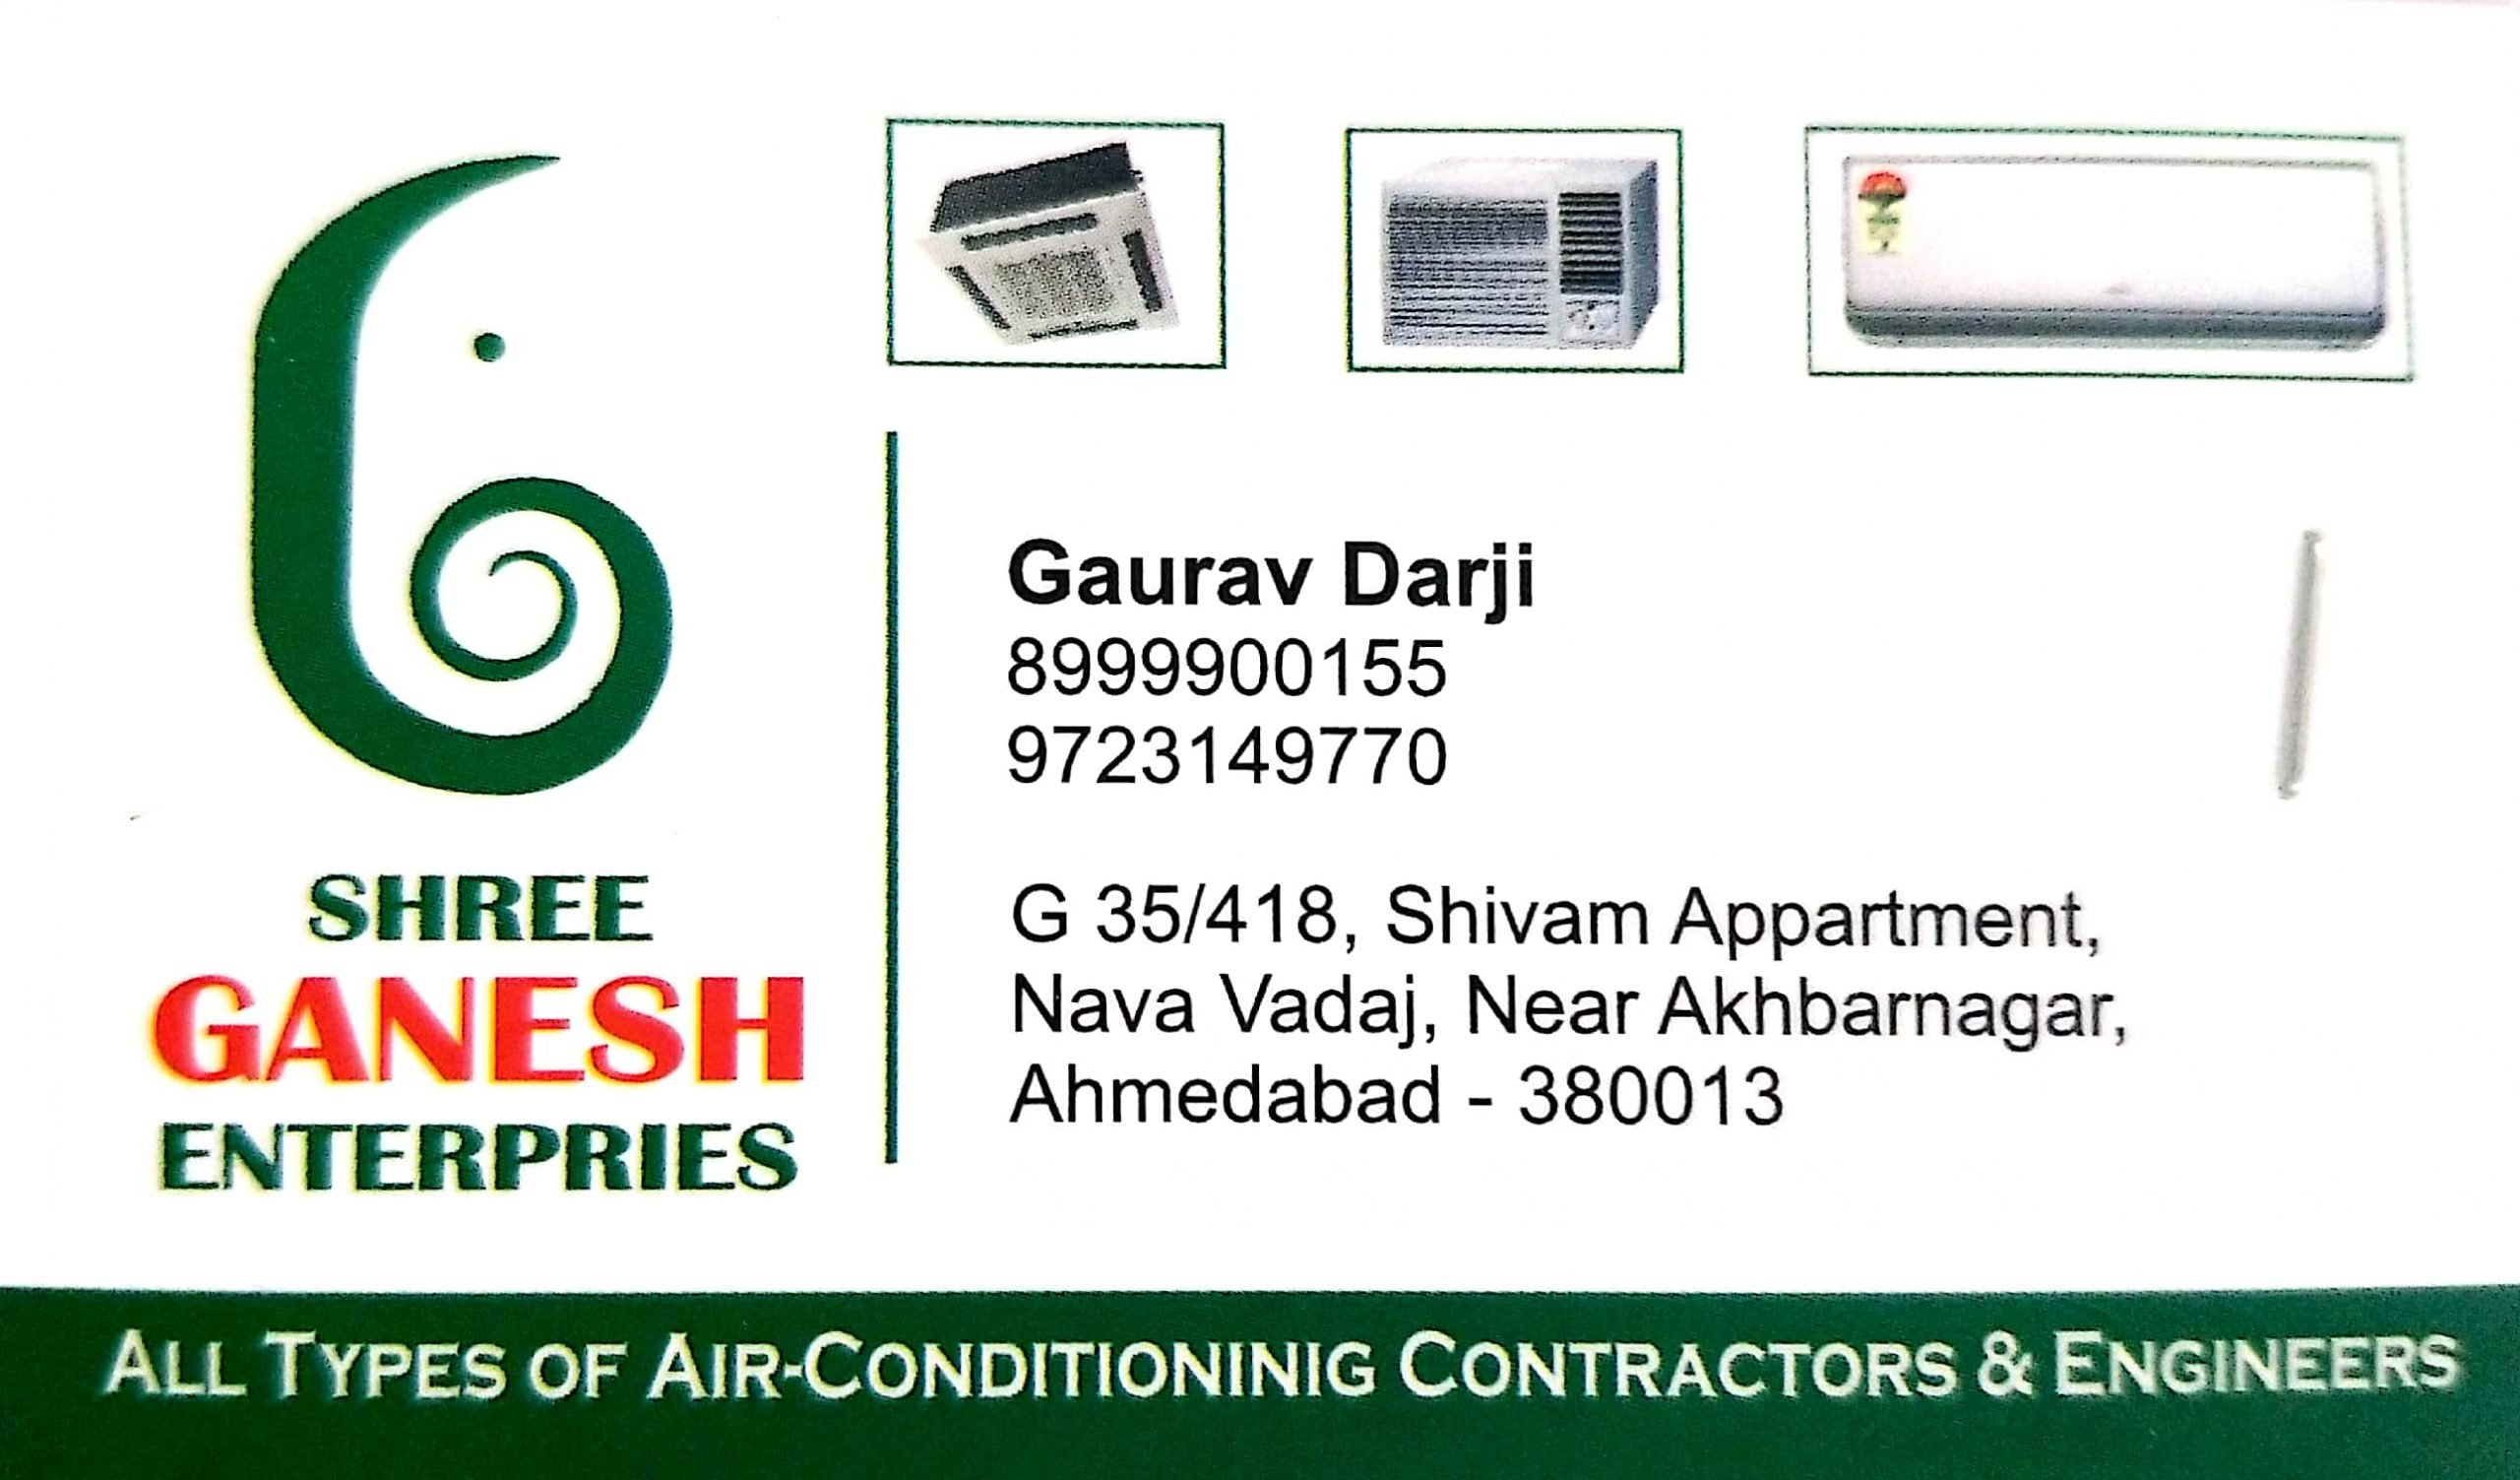 Shree Ganesh Enterprise